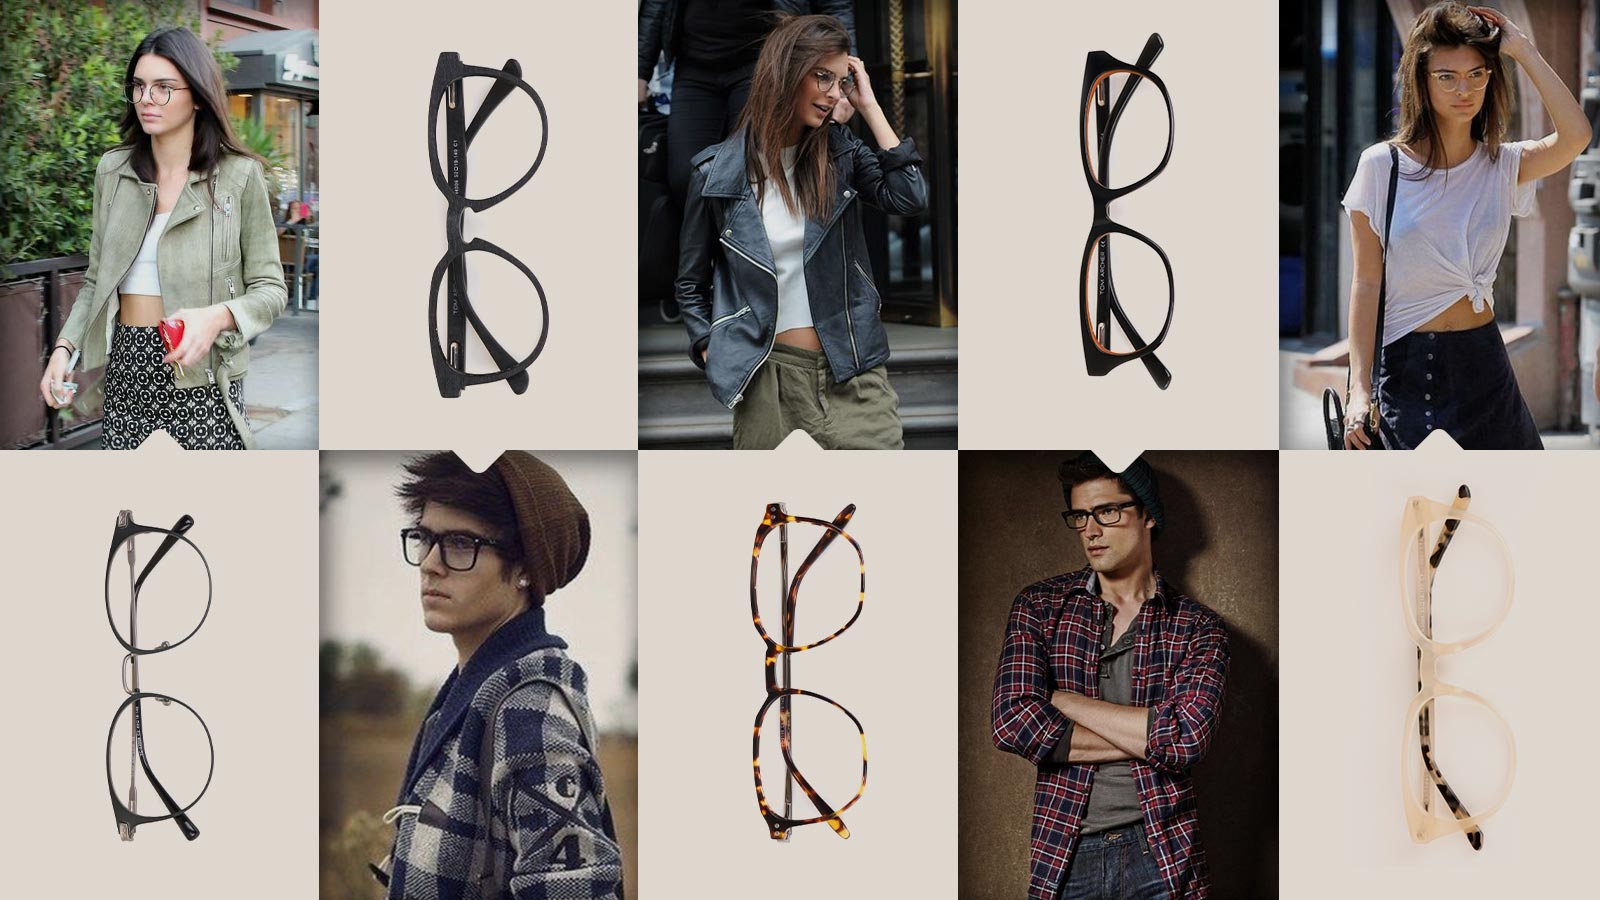 Eyewear trends 2018 - That turn heads and swears to slay